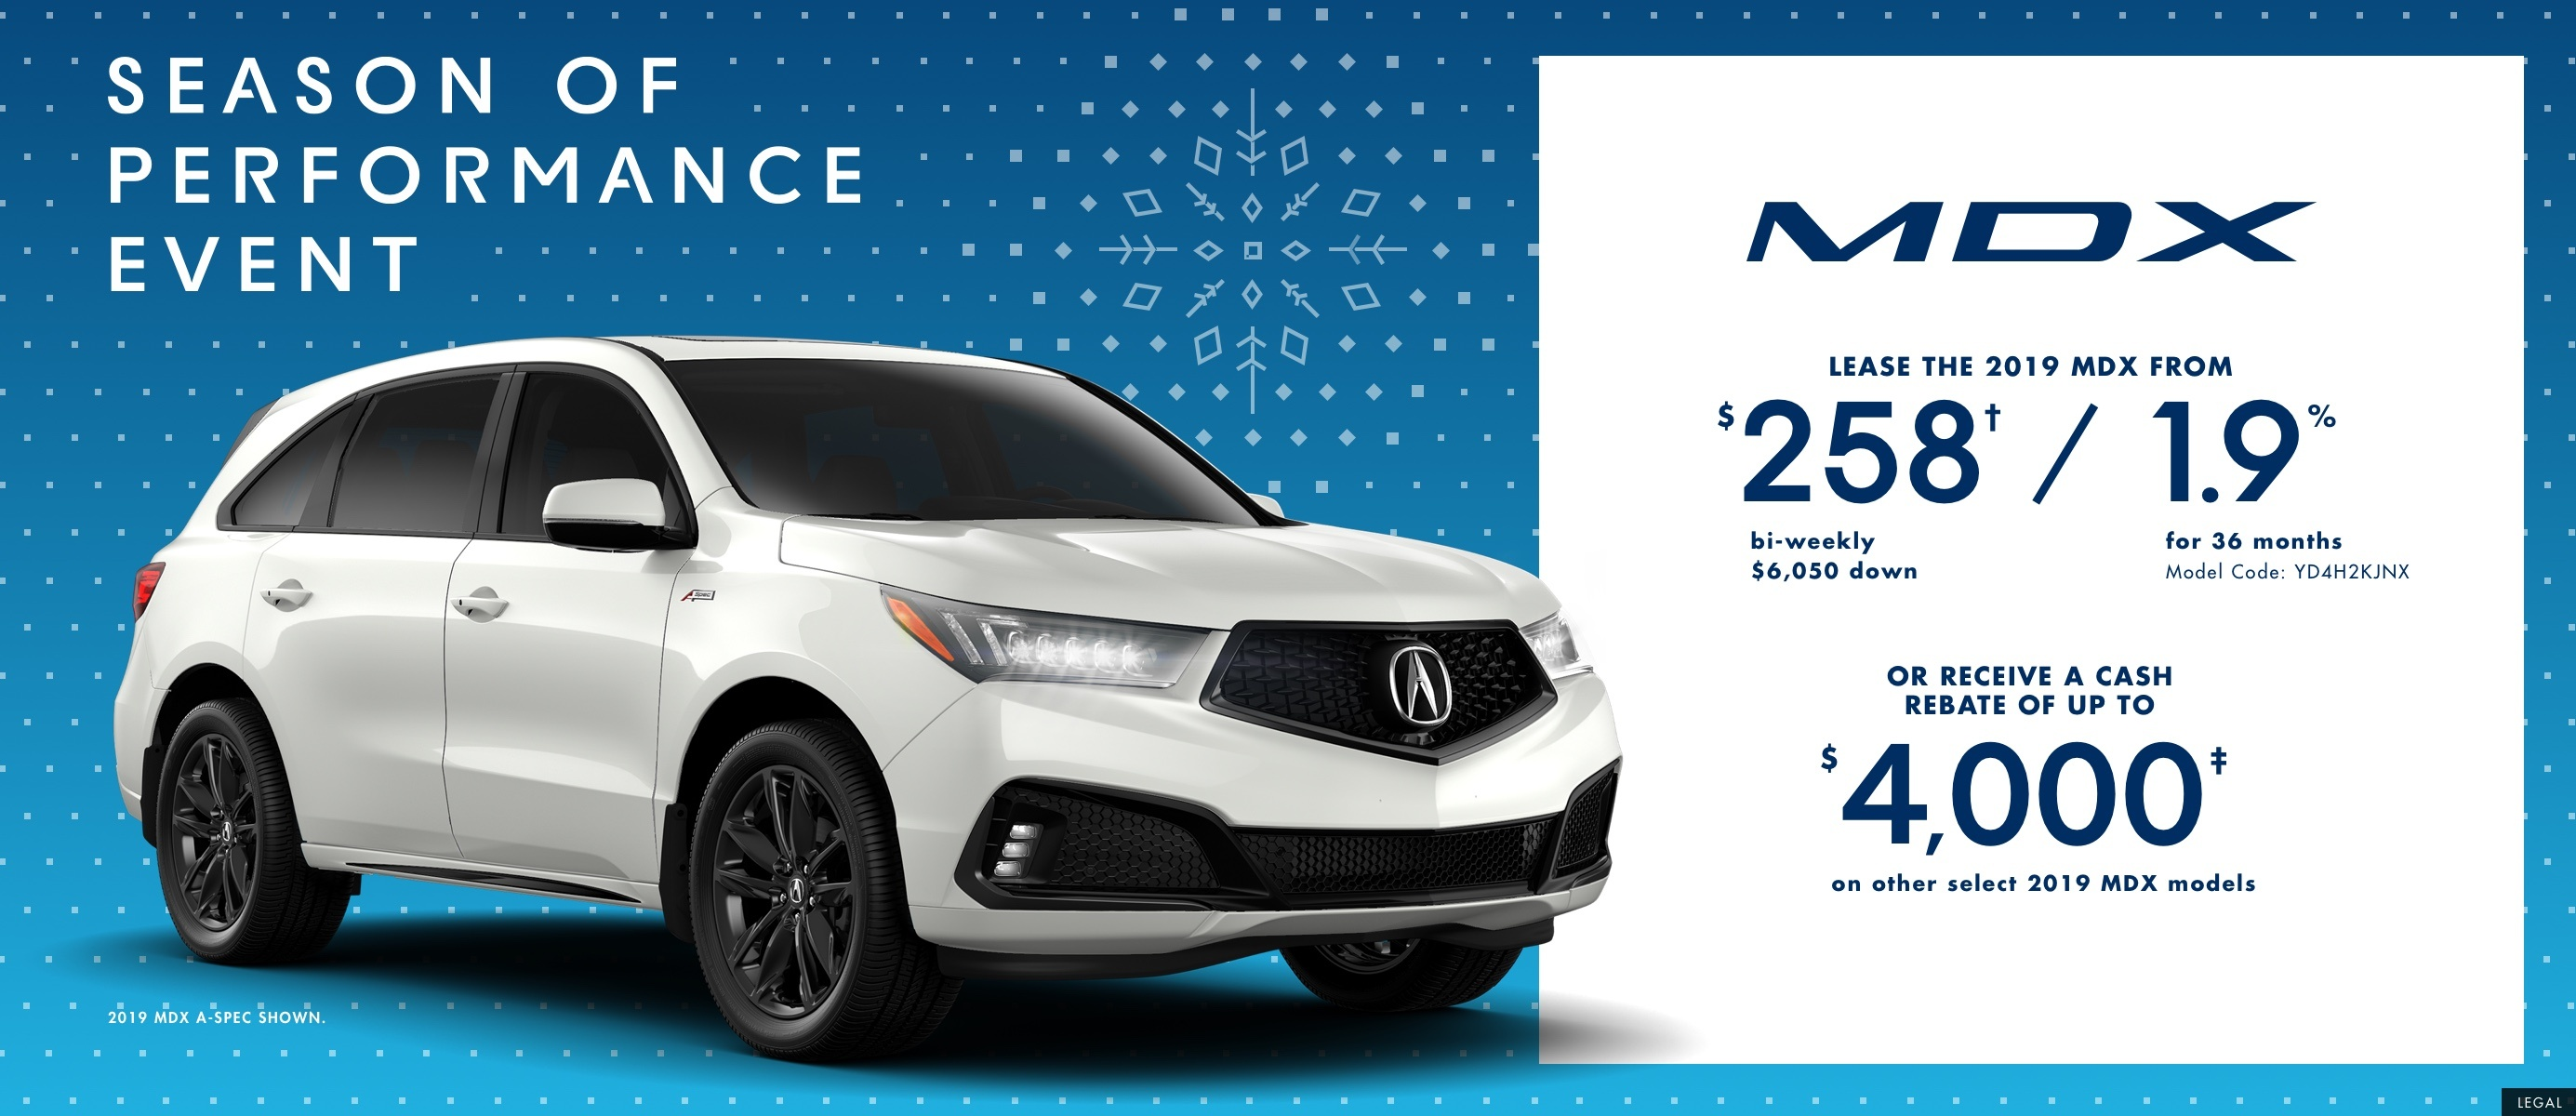 2019 Acura MDX |  Season of Performance Event